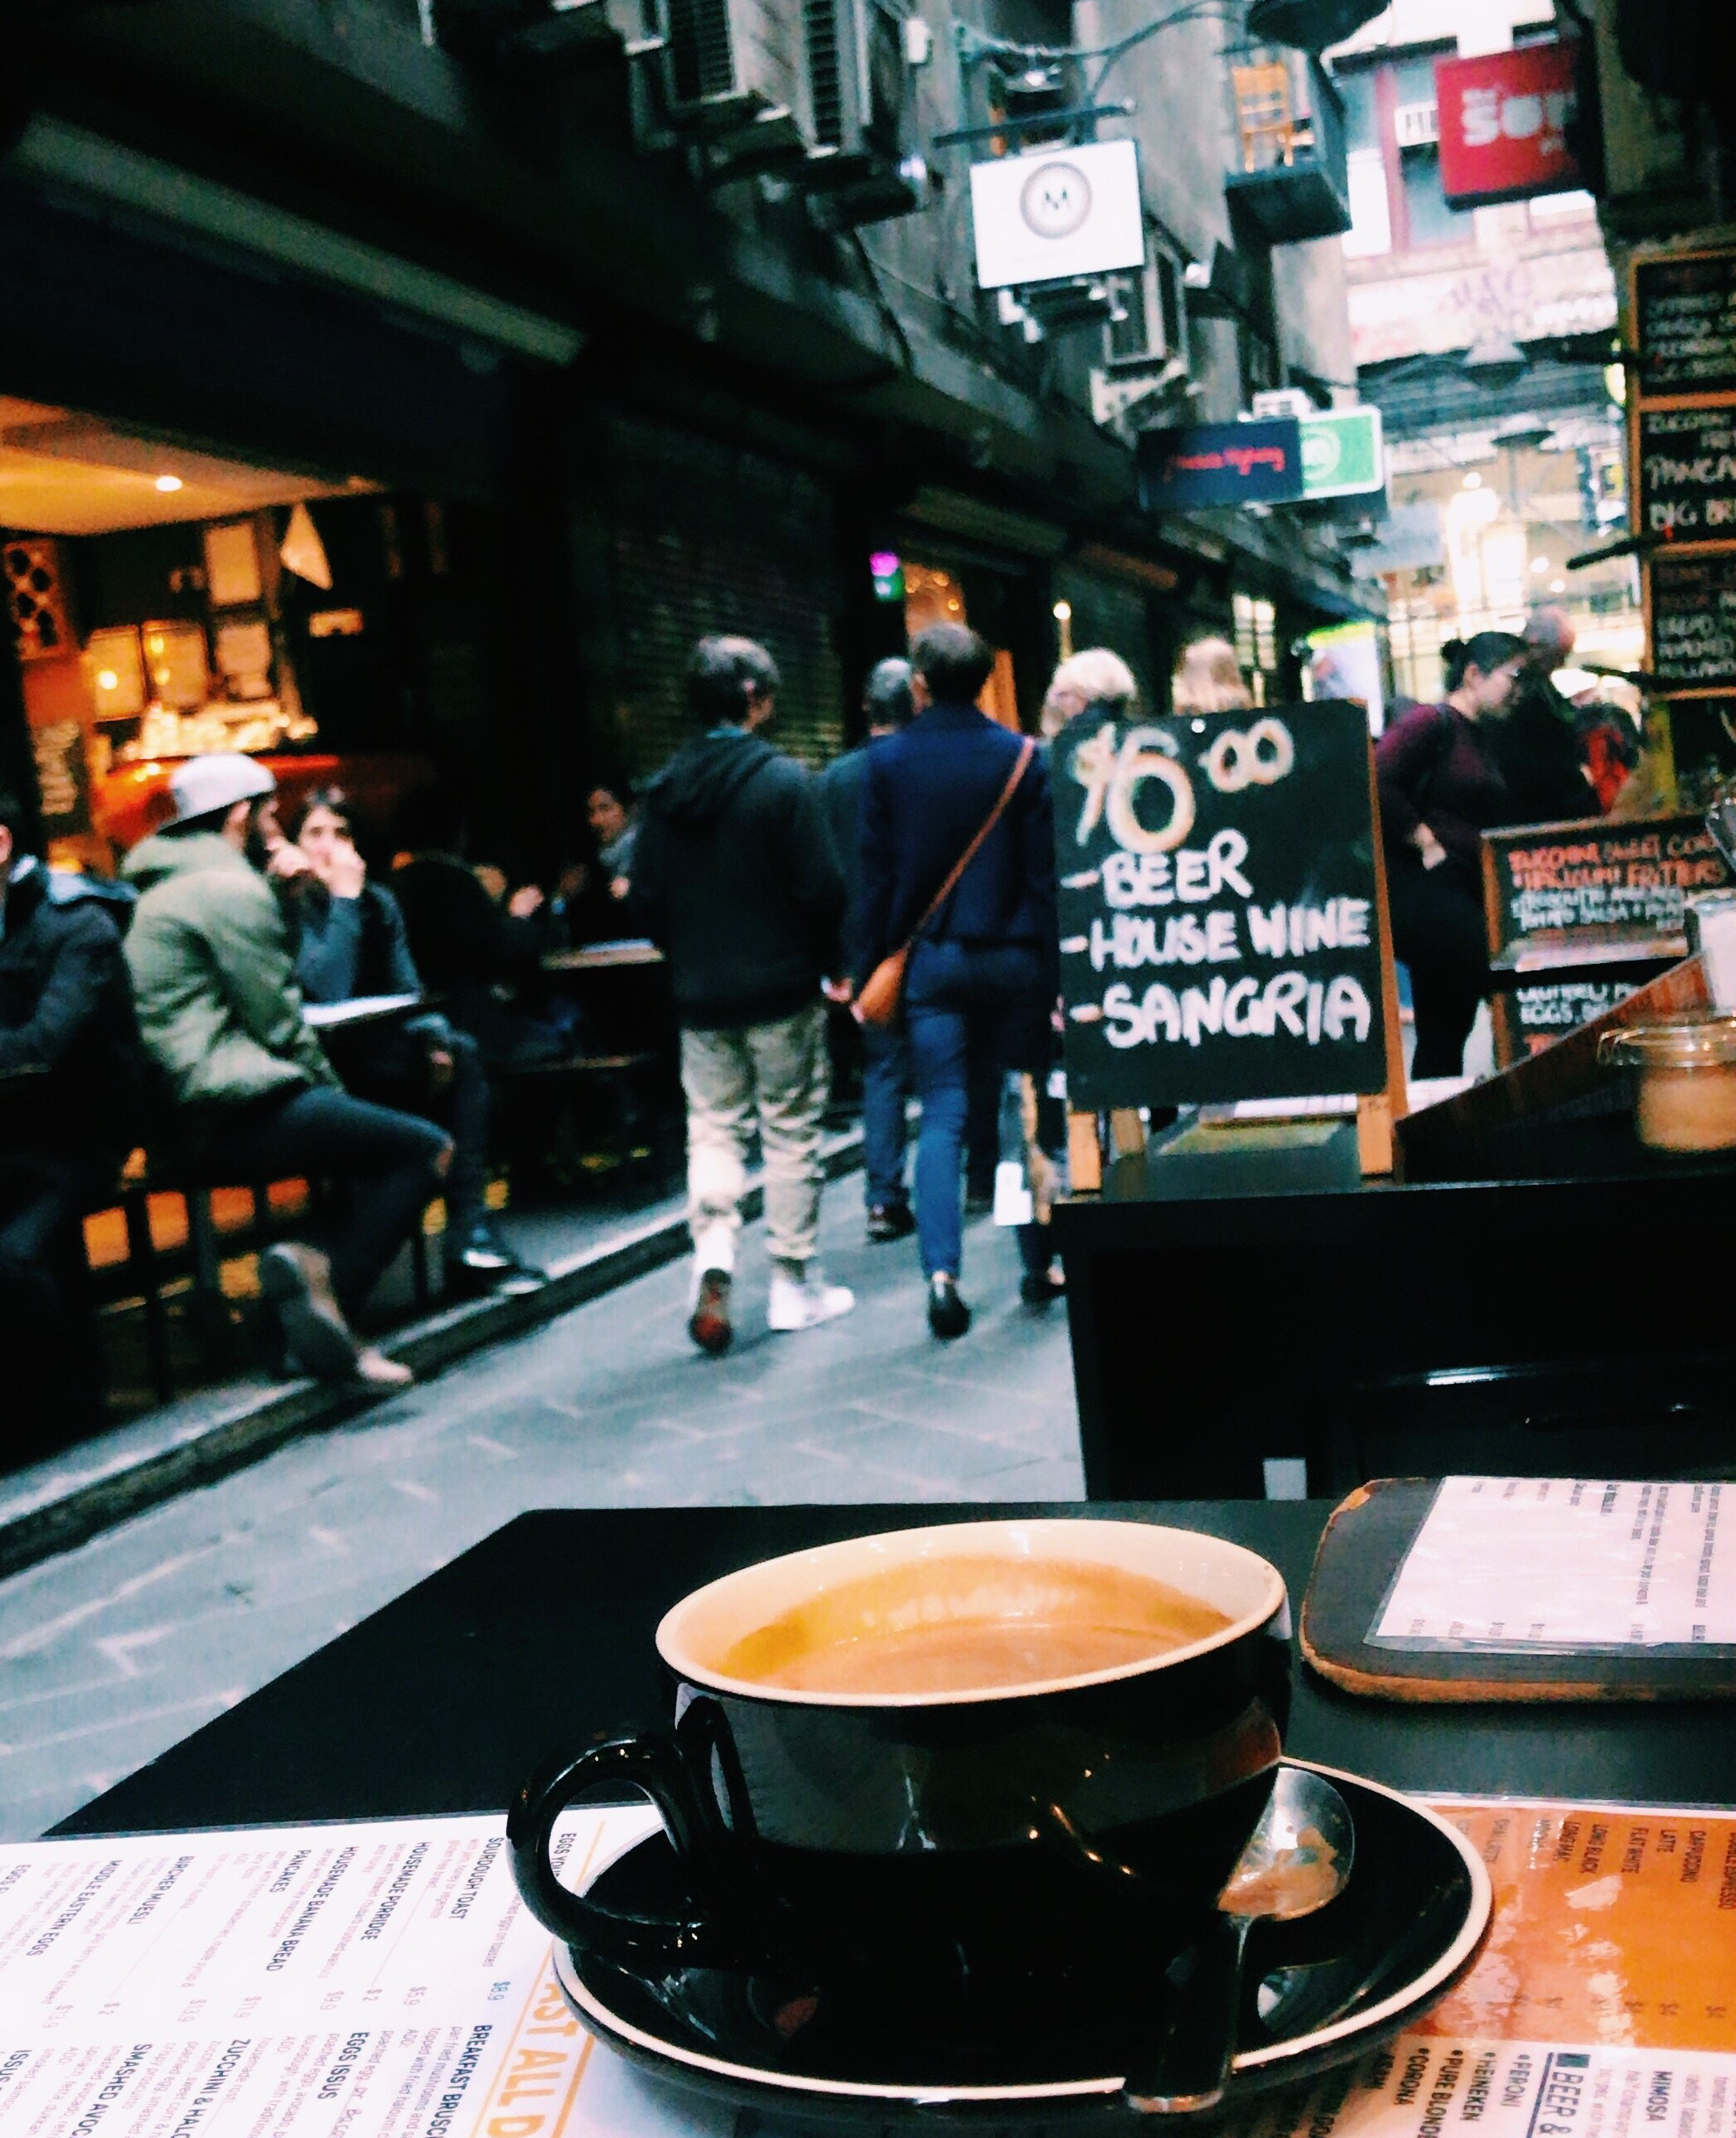 Confessions Of A Melbourne Barista: Spilling the beans of what it's like to make coffee in Melbourne